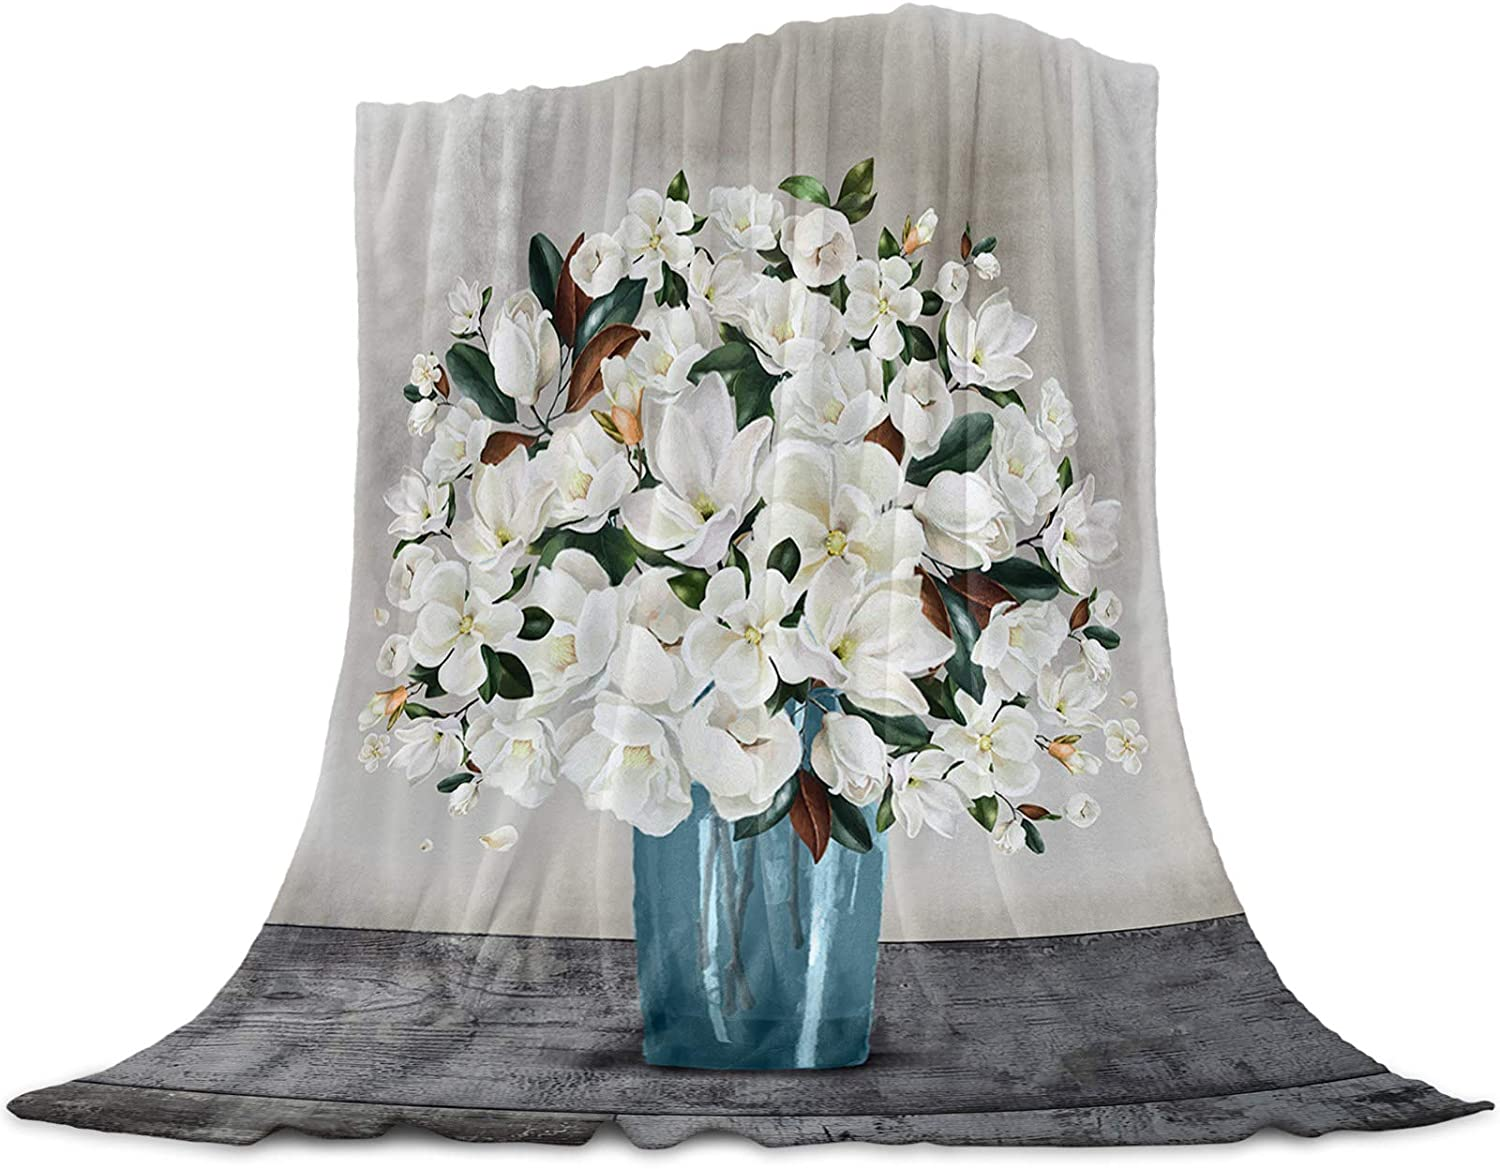 LEO BON Soft Warmer Inventory cleanup selling sale Lowest price challenge Throw Blankets Magn All Season for Vase with